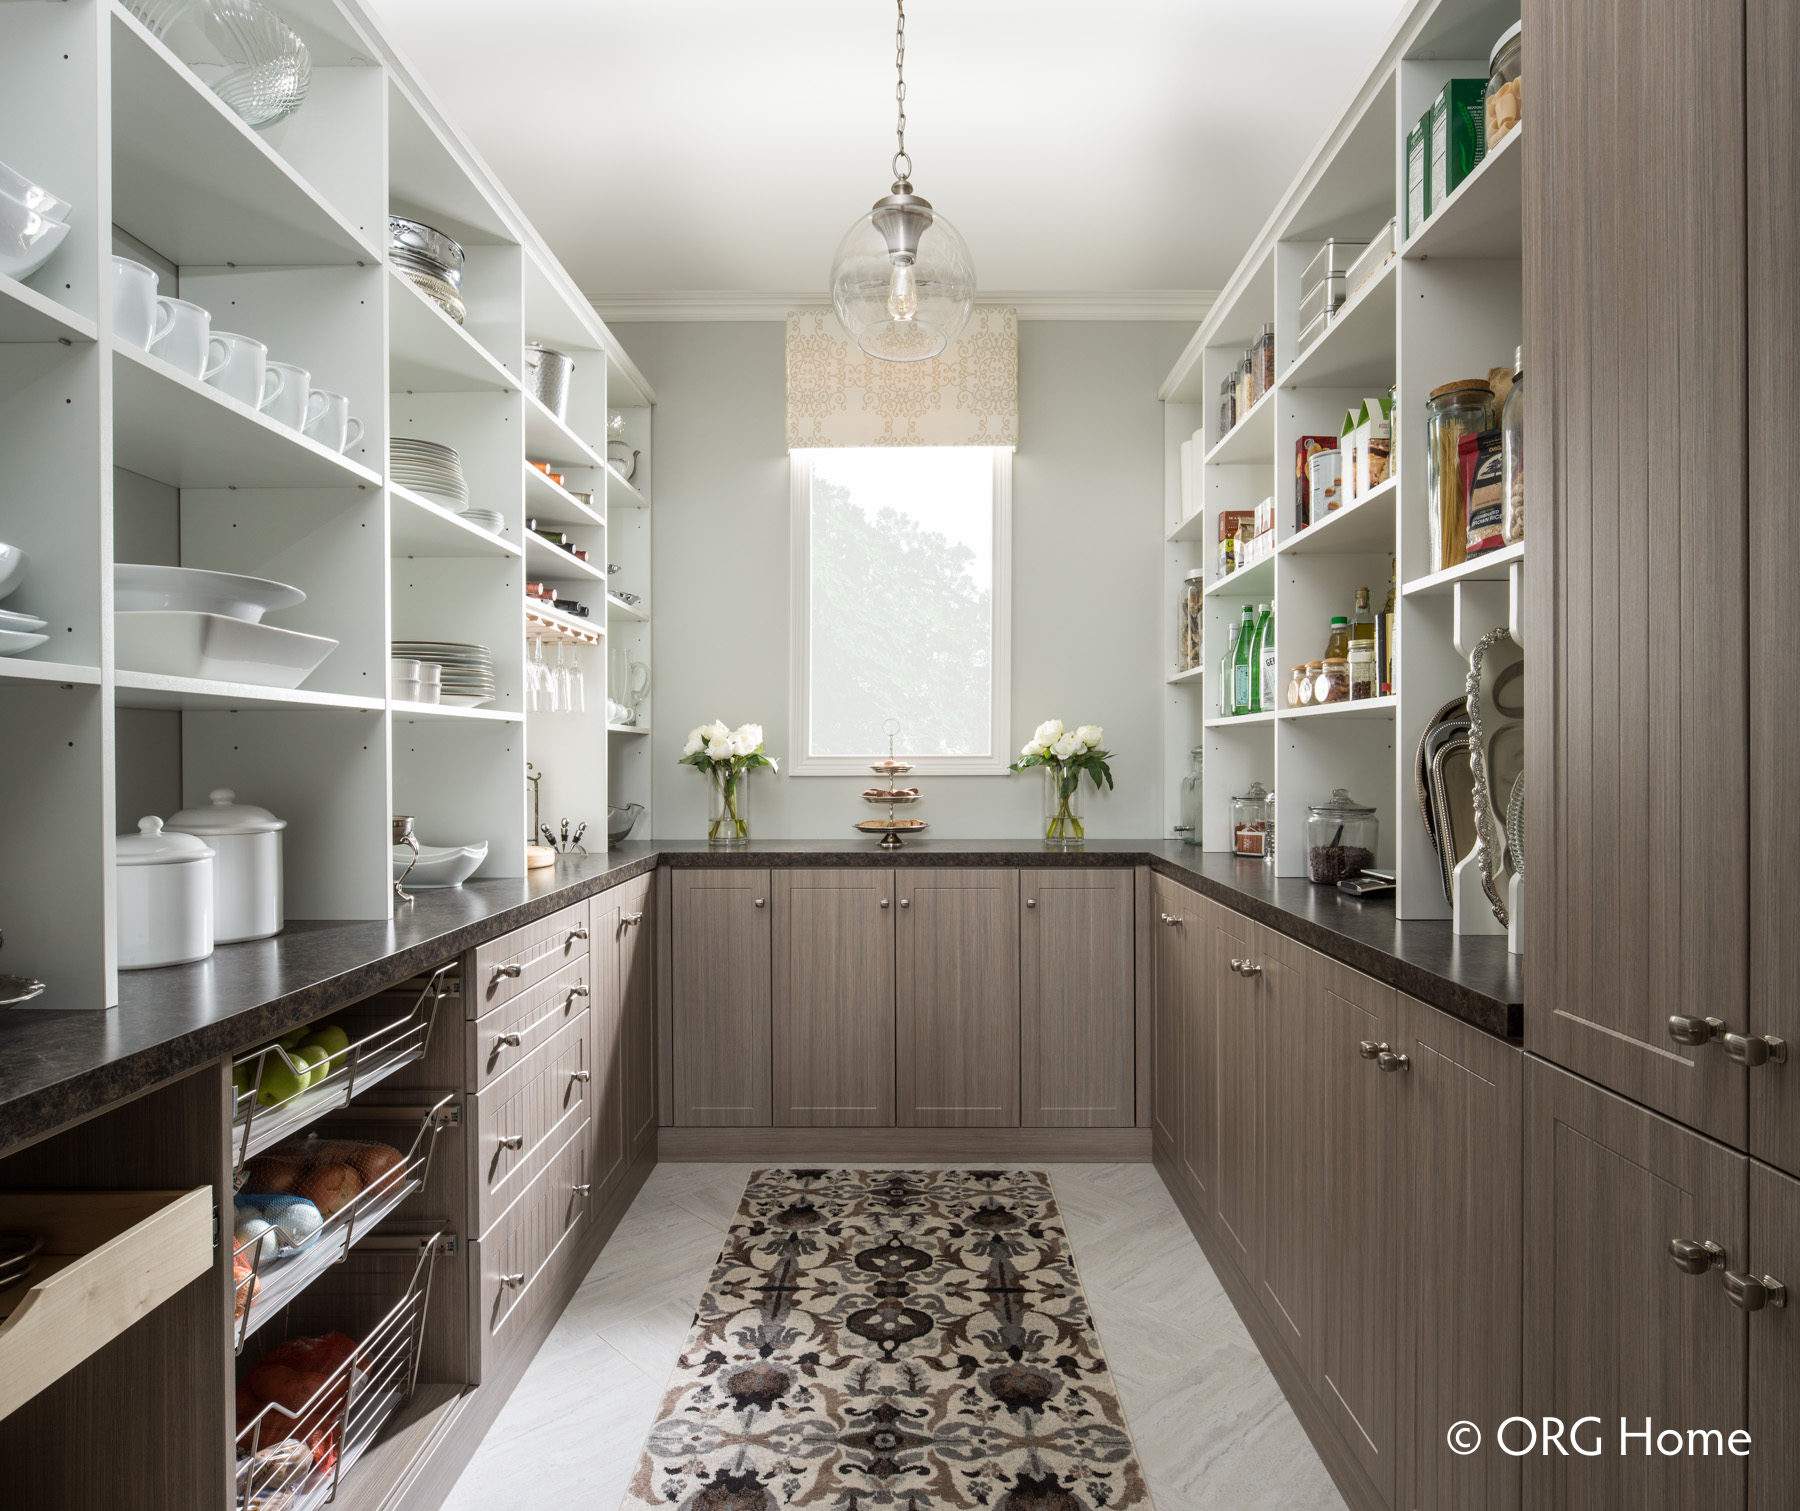 pantry cabinets and storage